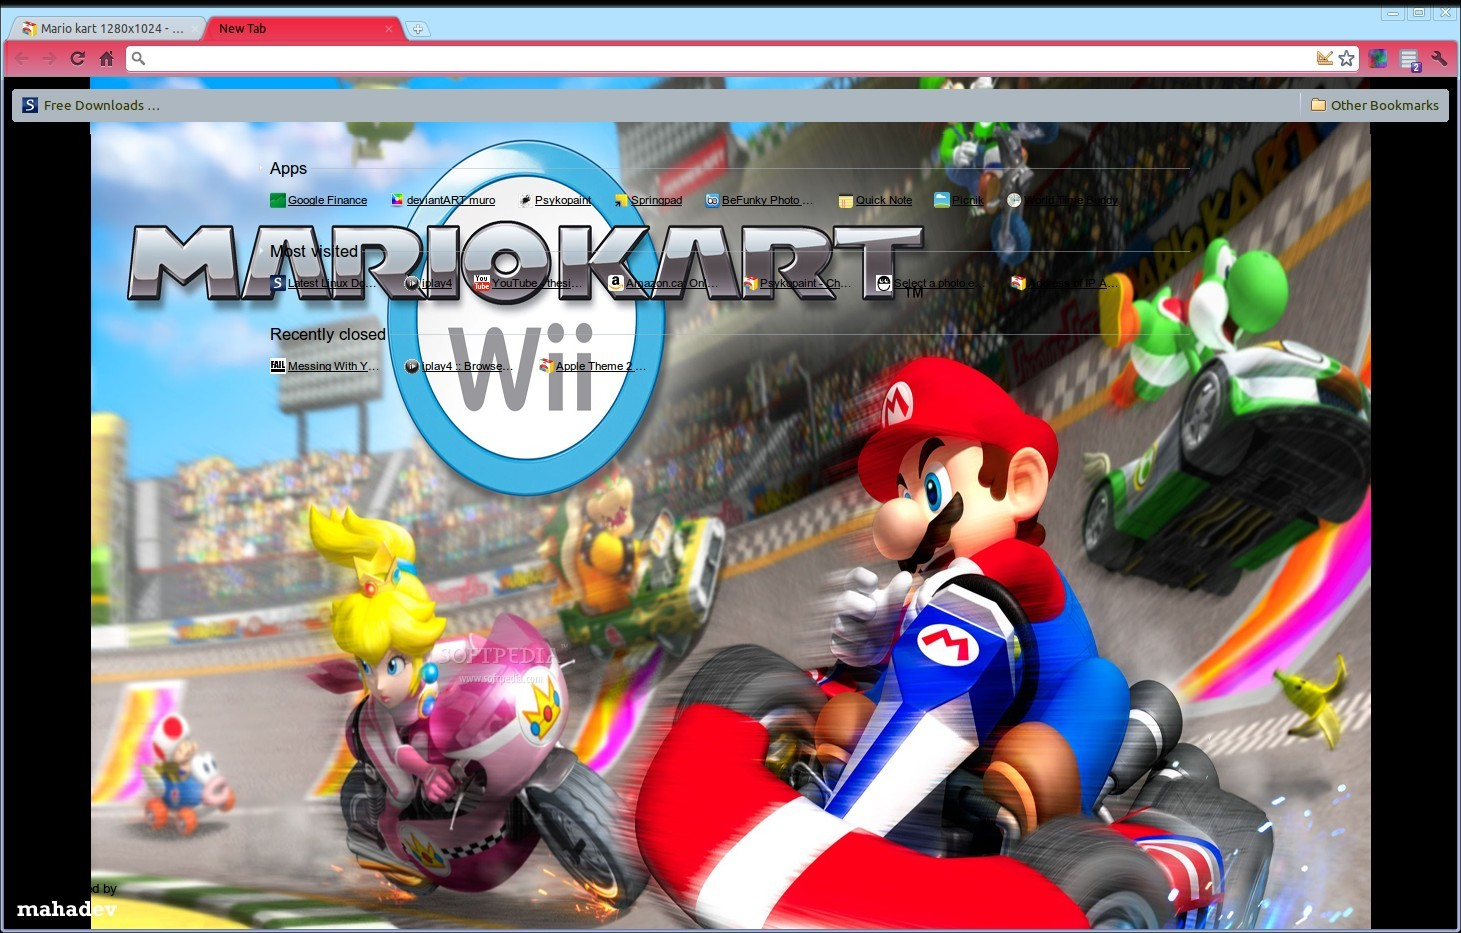 Mario kart 1280x1024 screenshot 1